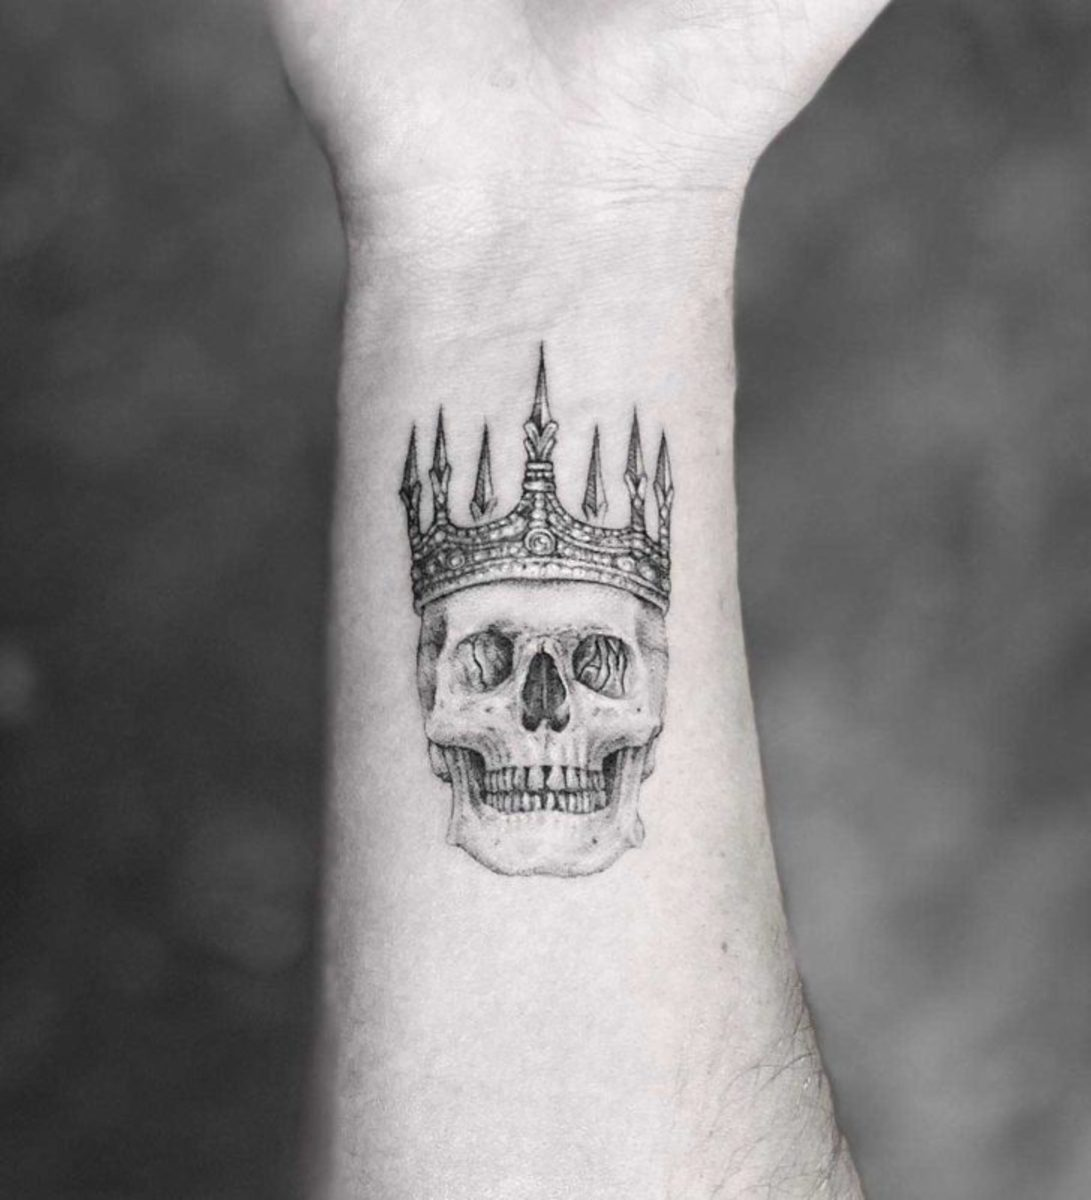 Skull-in-Crown-Tattoo-by-Mr.K-728x801